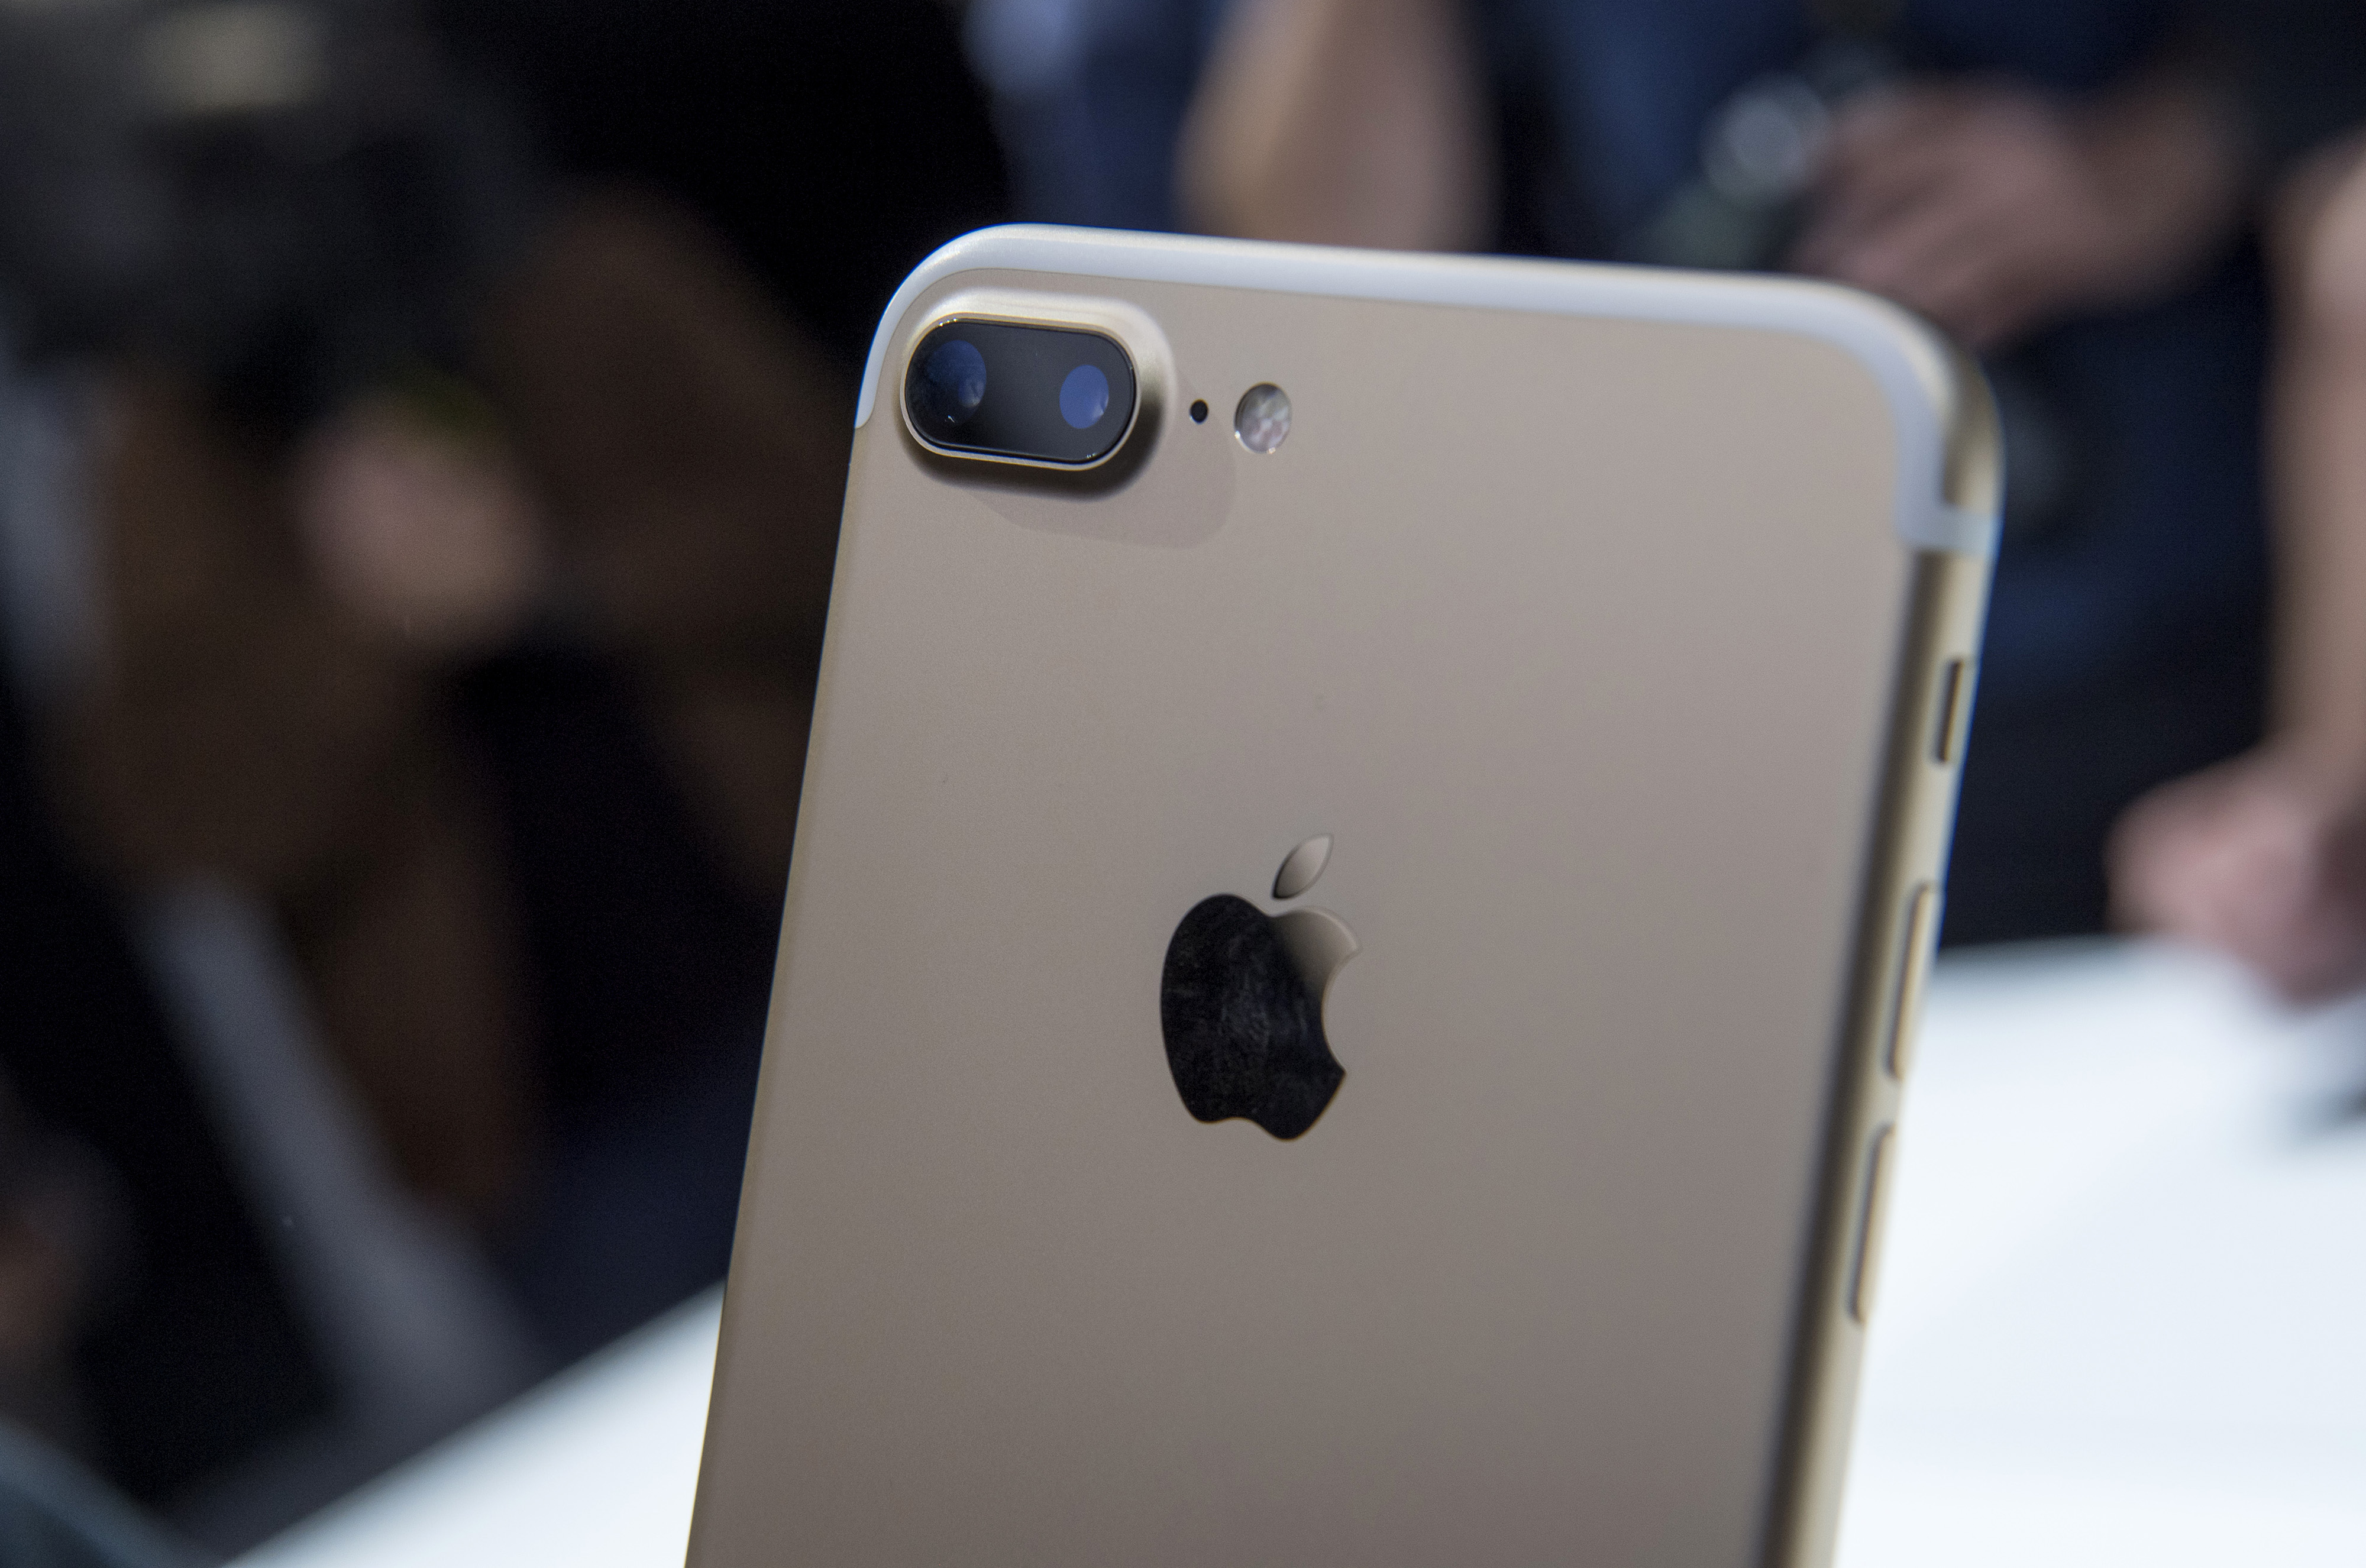 iPhone 7 Plus: Master Portrait Mode With These 7 Tips | Time